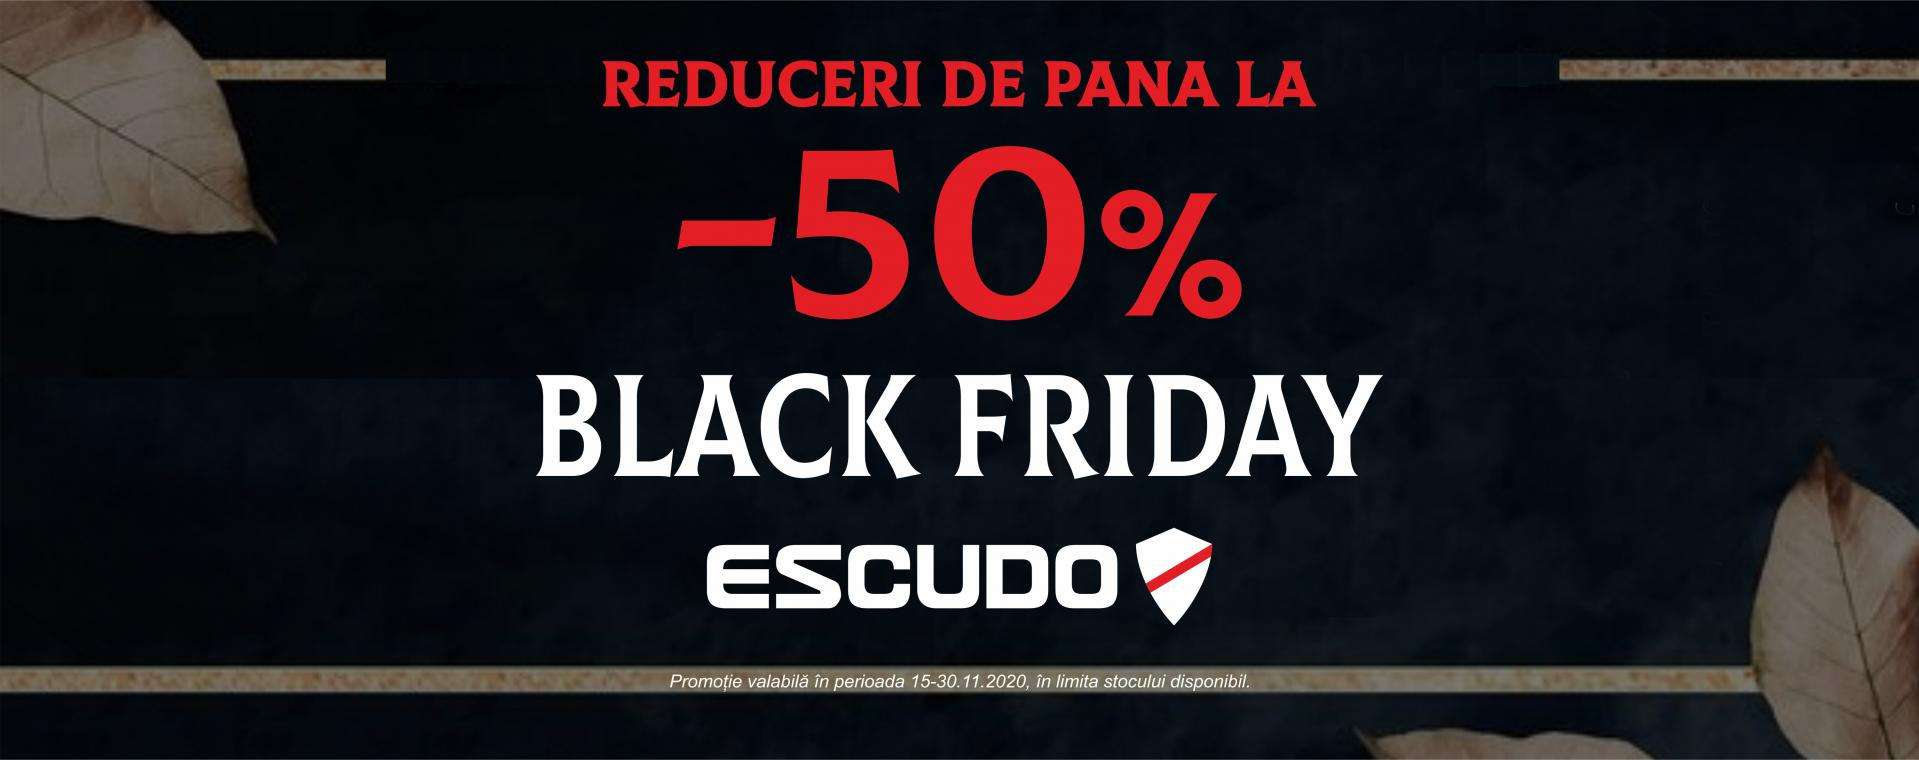 Black Friday Escudo